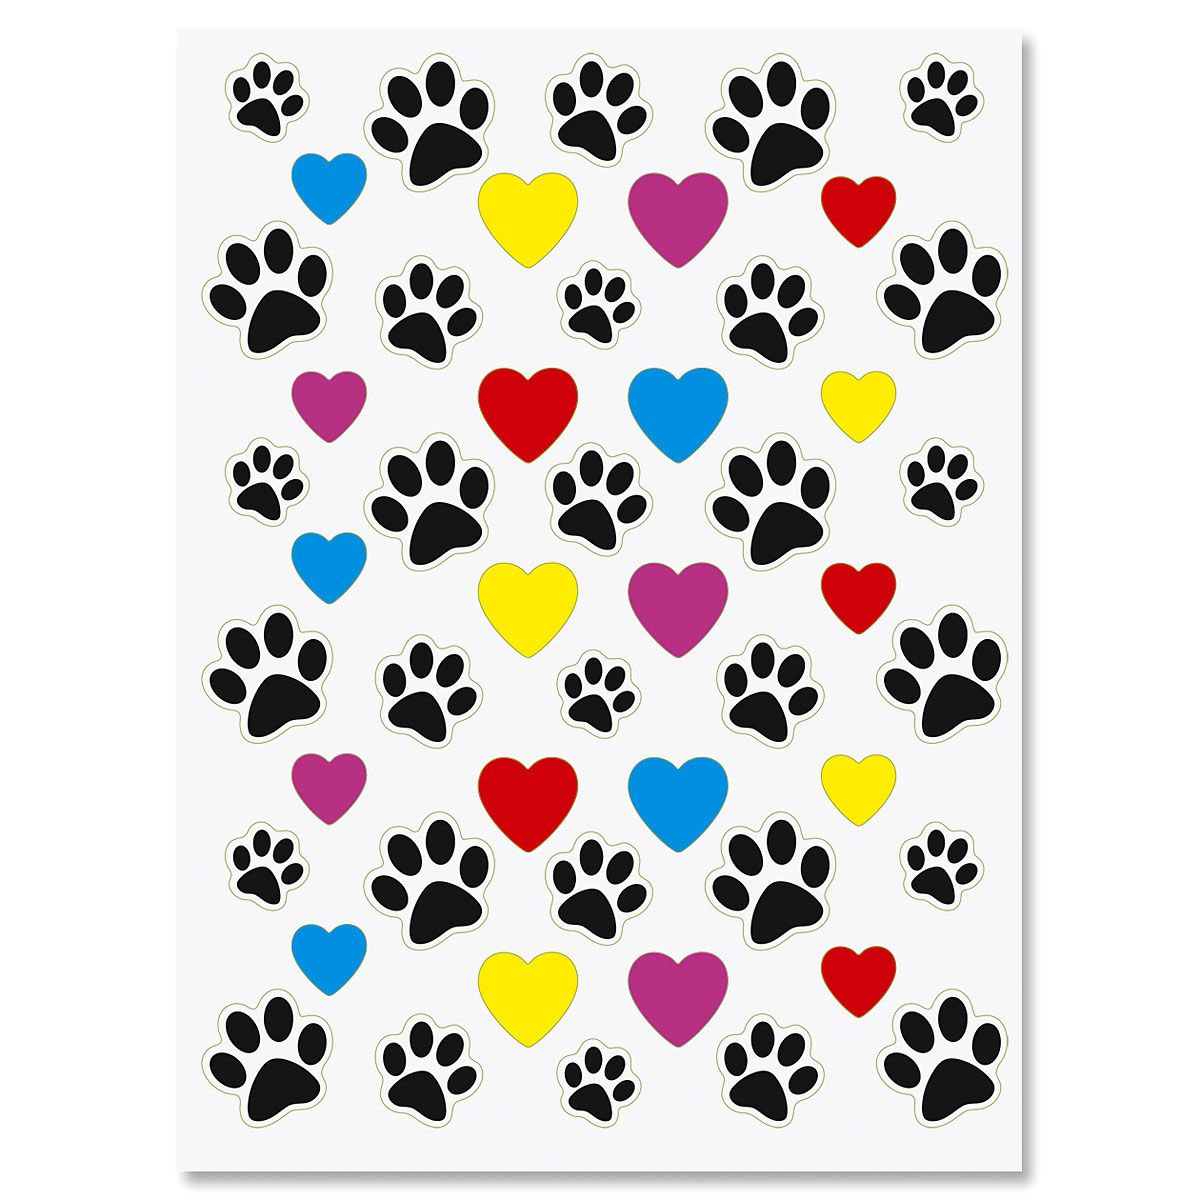 Pawprints/Hearts Stickers